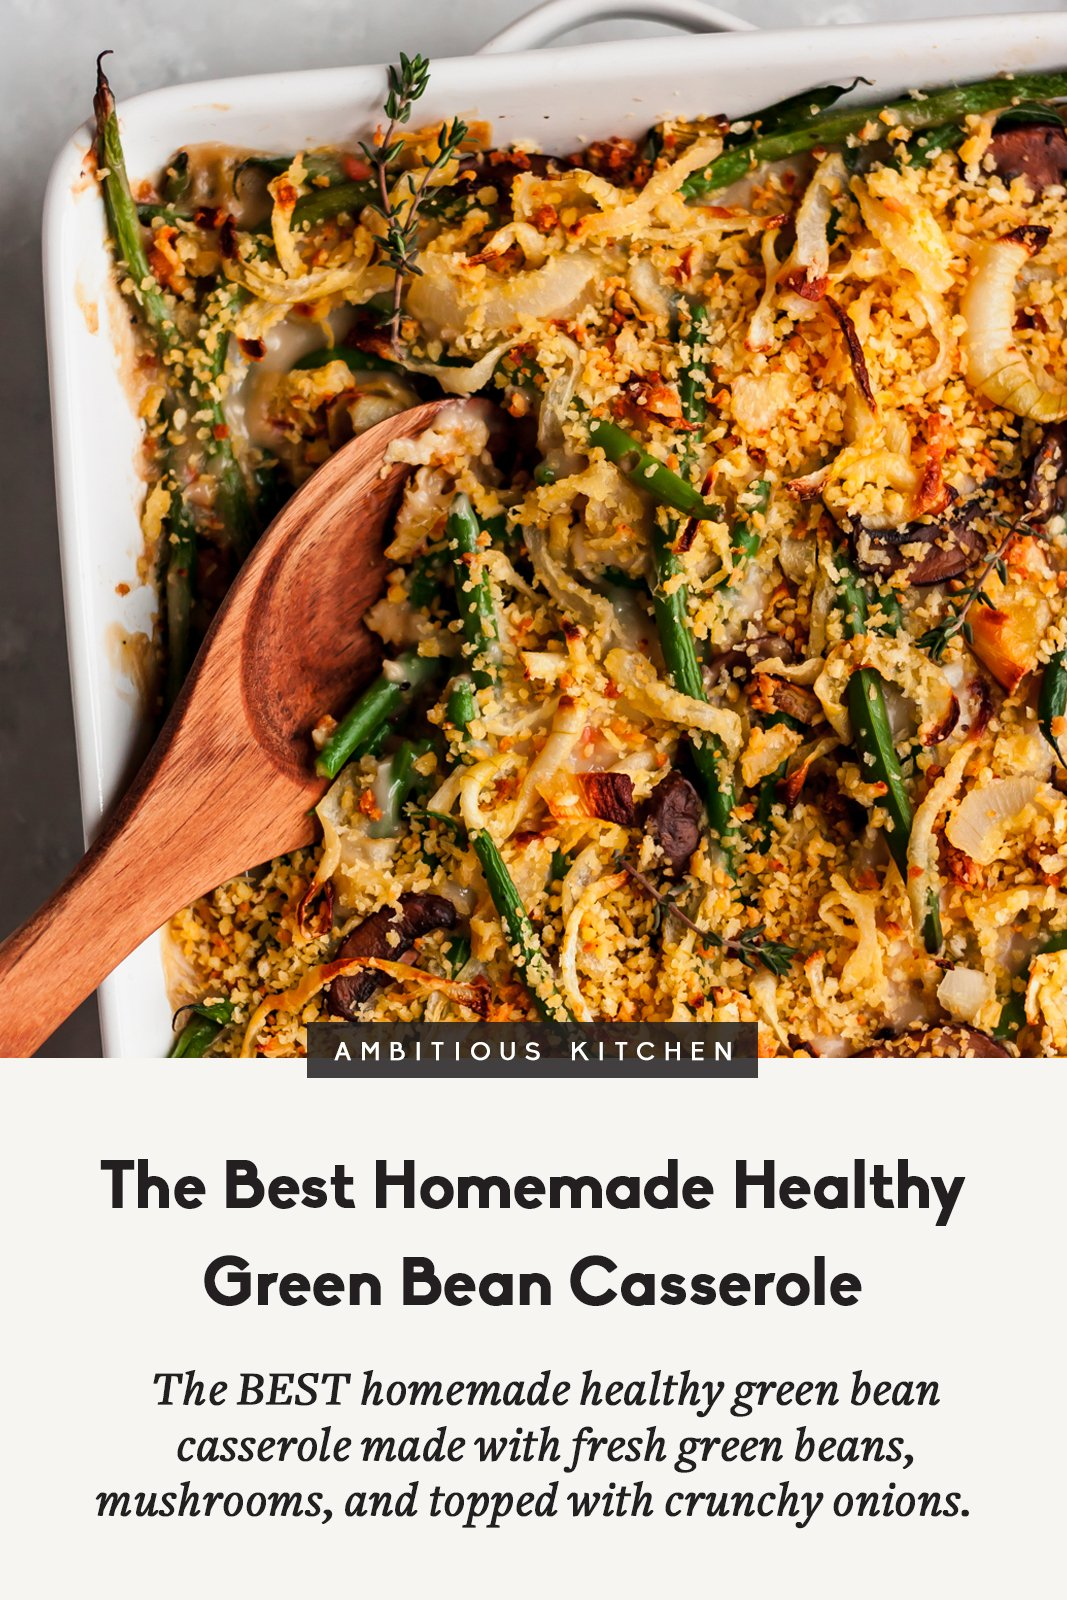 healthy green bean casserole in a baking dish with a wooden spoon and a title below it